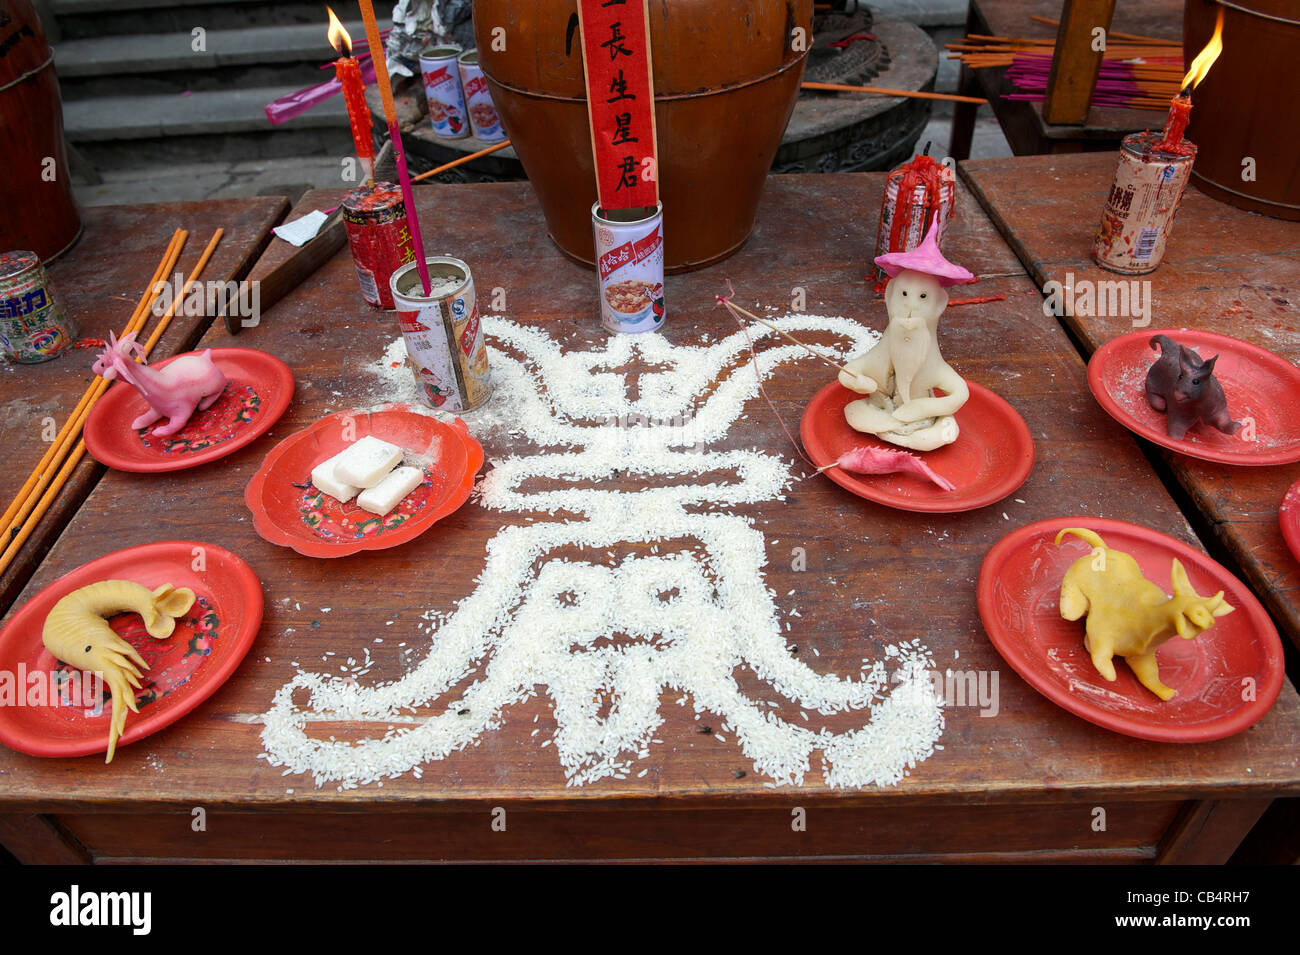 Sign of longevity - made with rice at a Taoist temple during Xiayuan Festival in China. 2011 - Stock Image